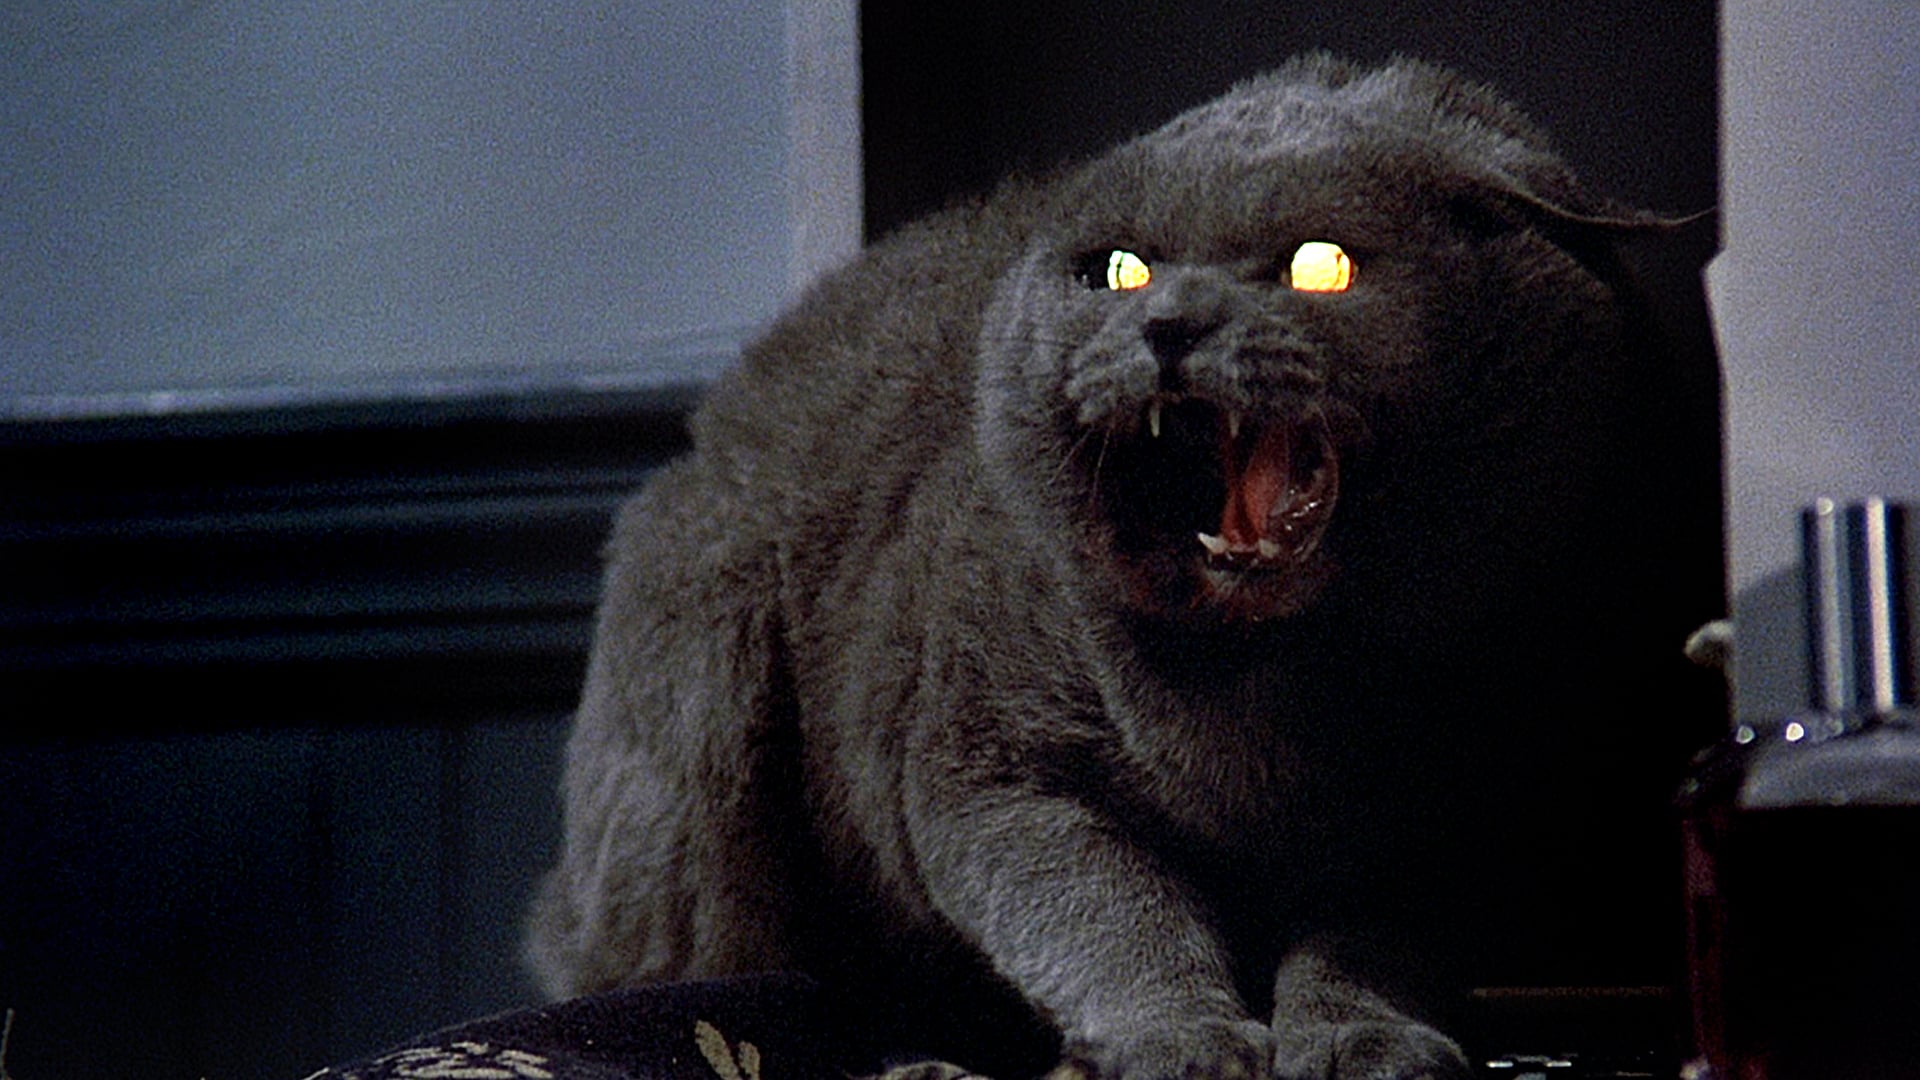 Church, the Creed family's demonic cat, in the original Pet Sematary